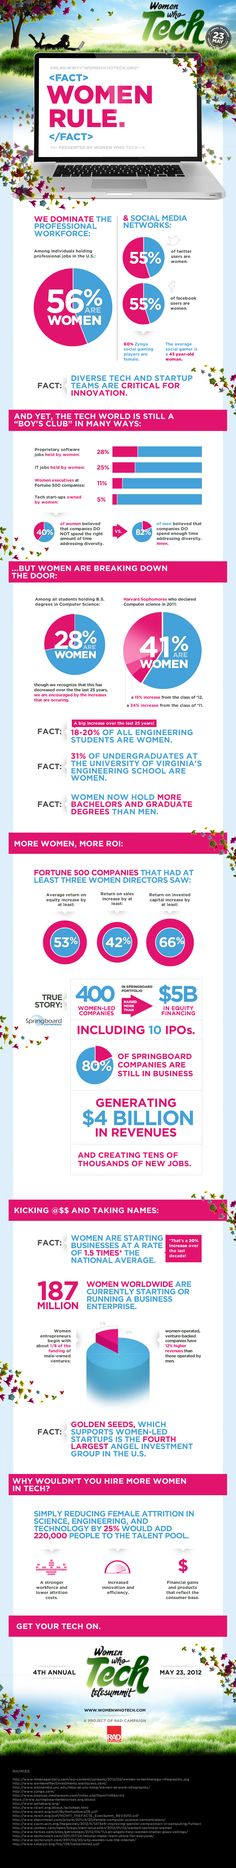 Women in Technology Infographic  #FemTech